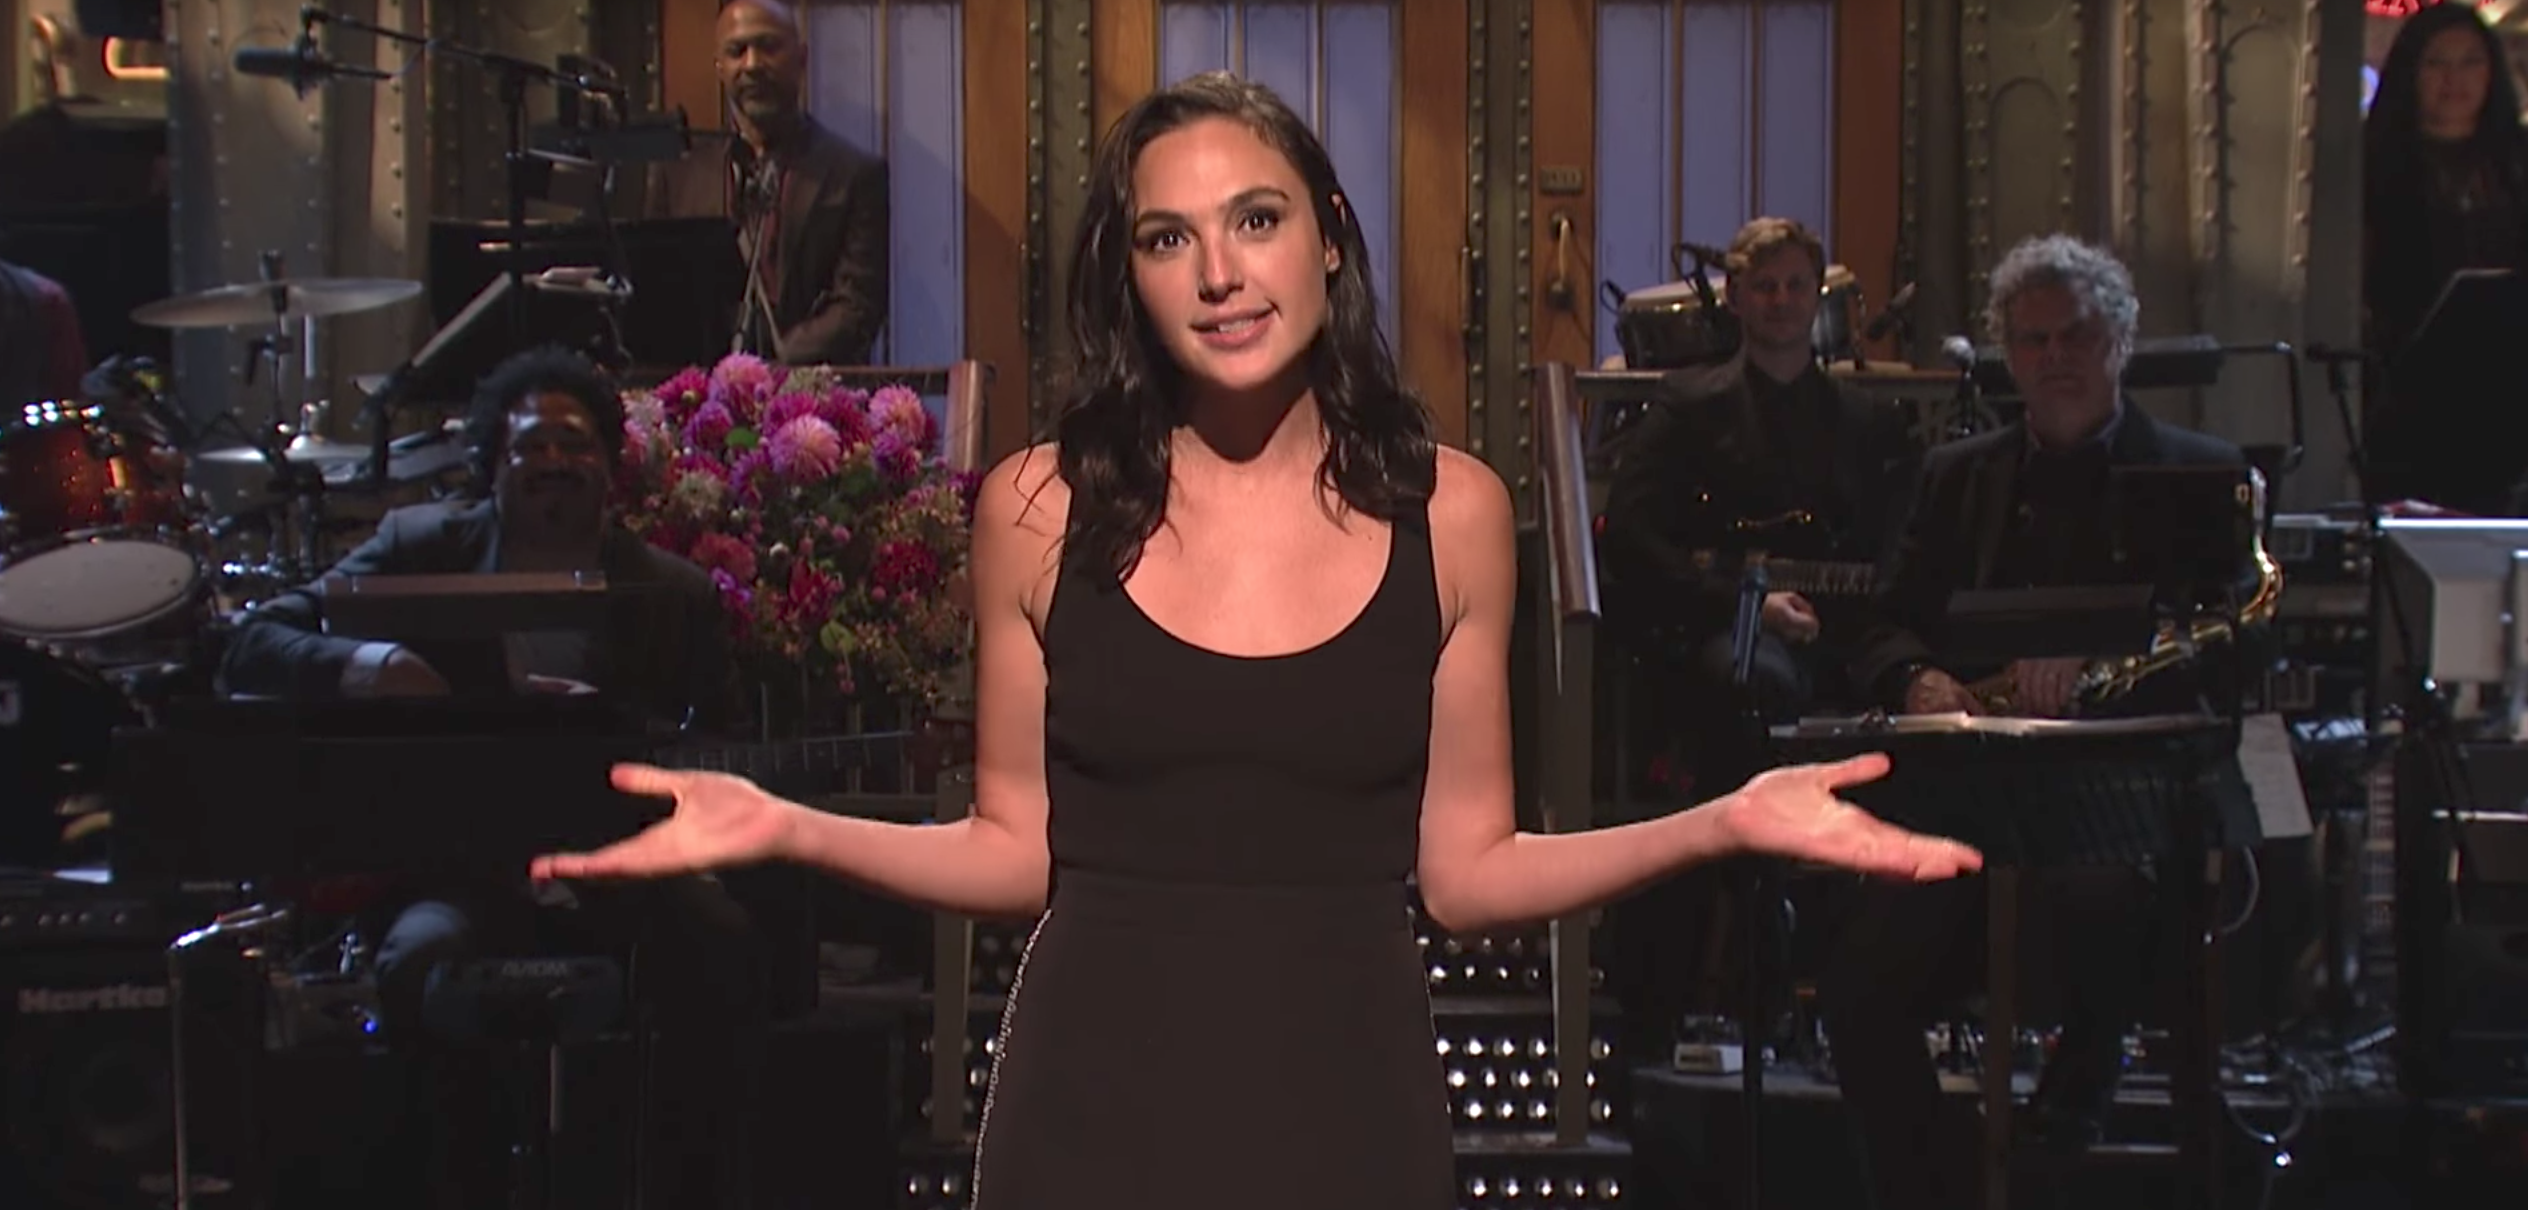 Israeli star Gal Gadot (best known at Wonder Woman) hosted Saturday Night Live. Oct. 7 2017